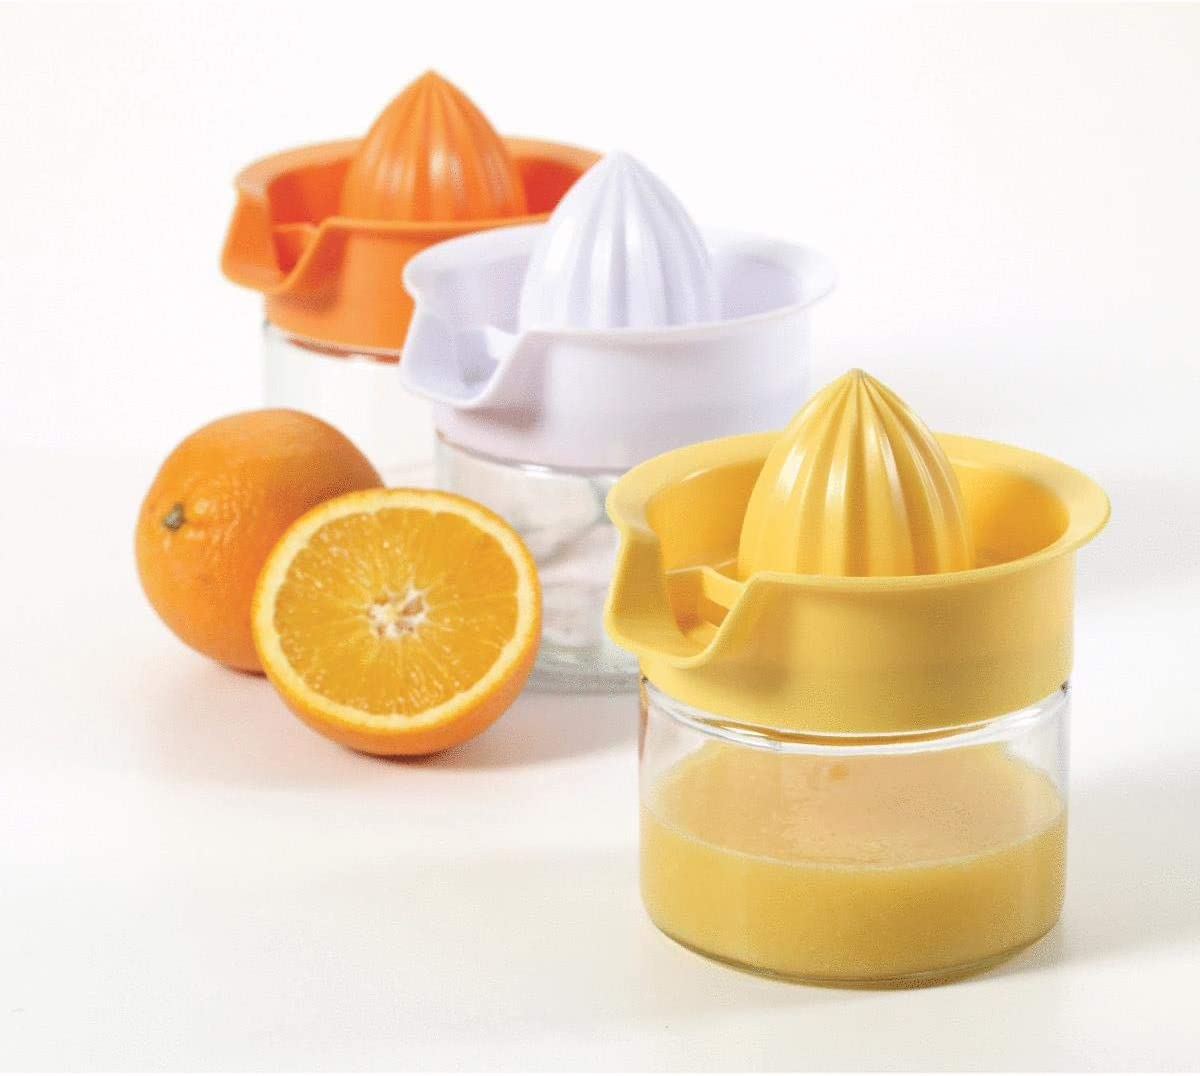 Gemco 12-Ounce Juicer Asst Colors - 5078573